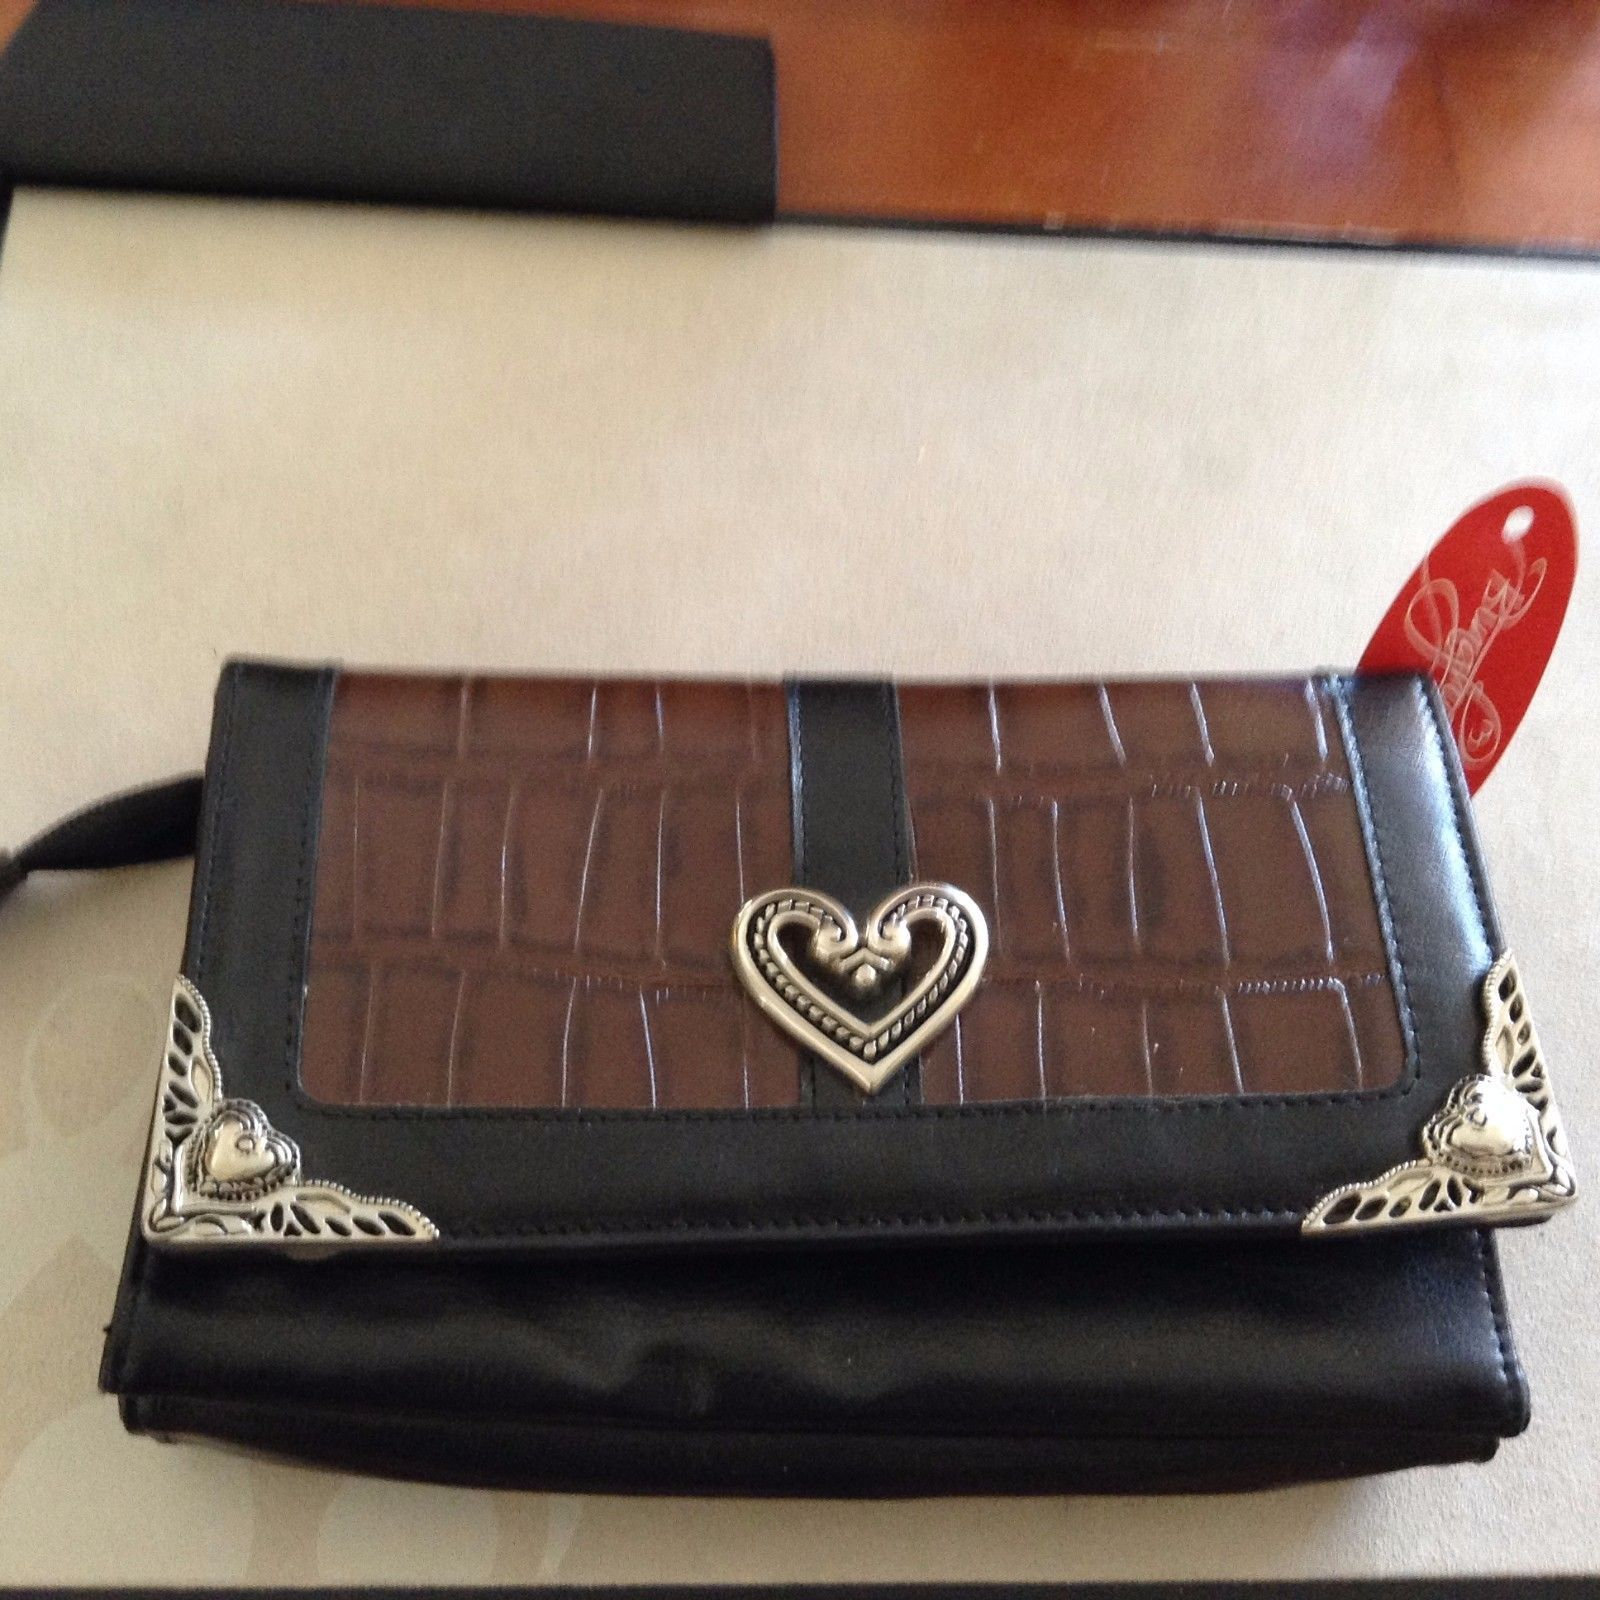 New Bingham by Dynasty Wallet Purse Black Brown Hearts in Silver Tone Zipper